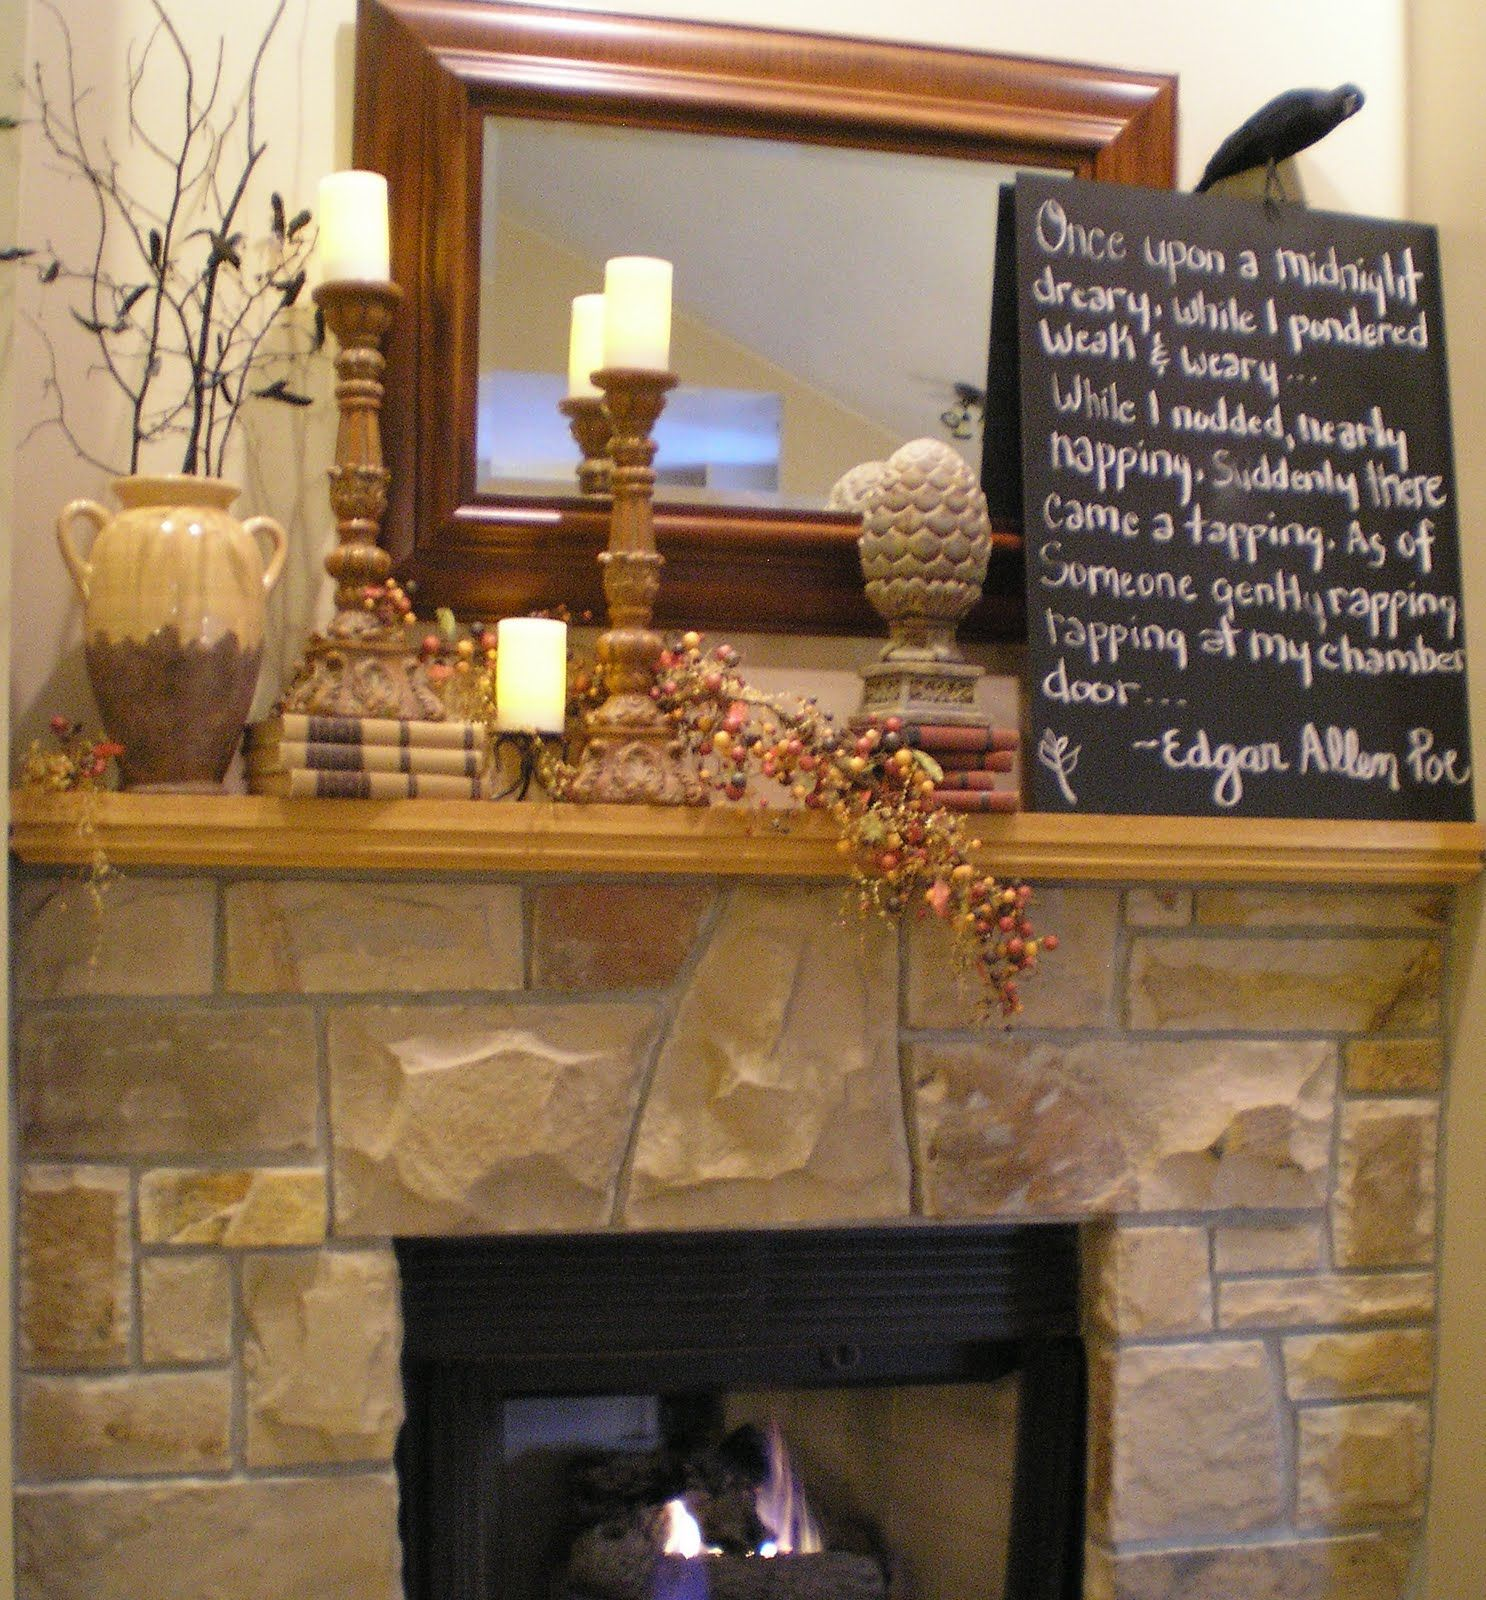 17 best images about fireplace and mantel ideas on pinterest design fireplaces and fireplace mantels - Mantel Design Ideas